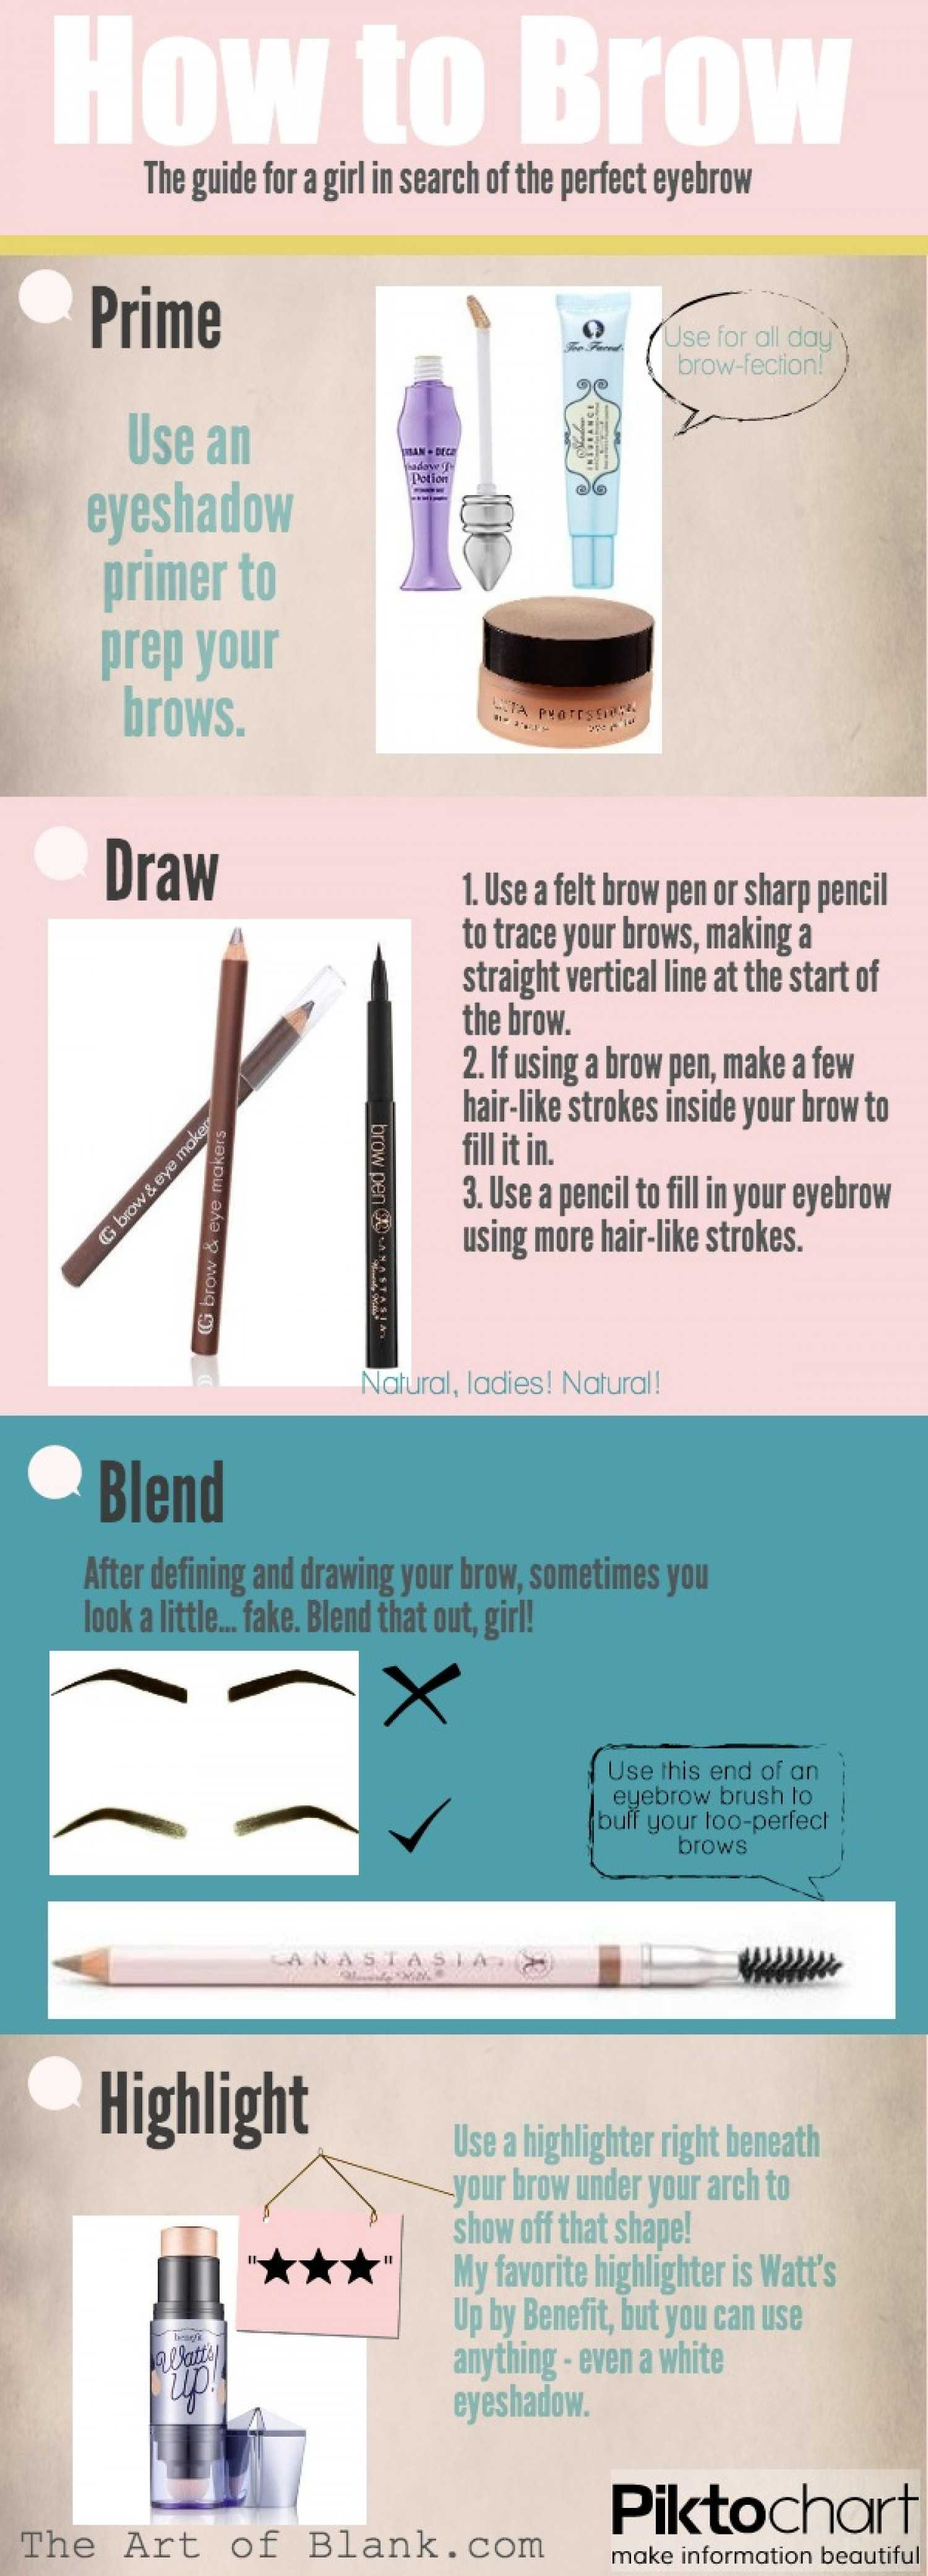 The 4 Stages Of Brow Makeup